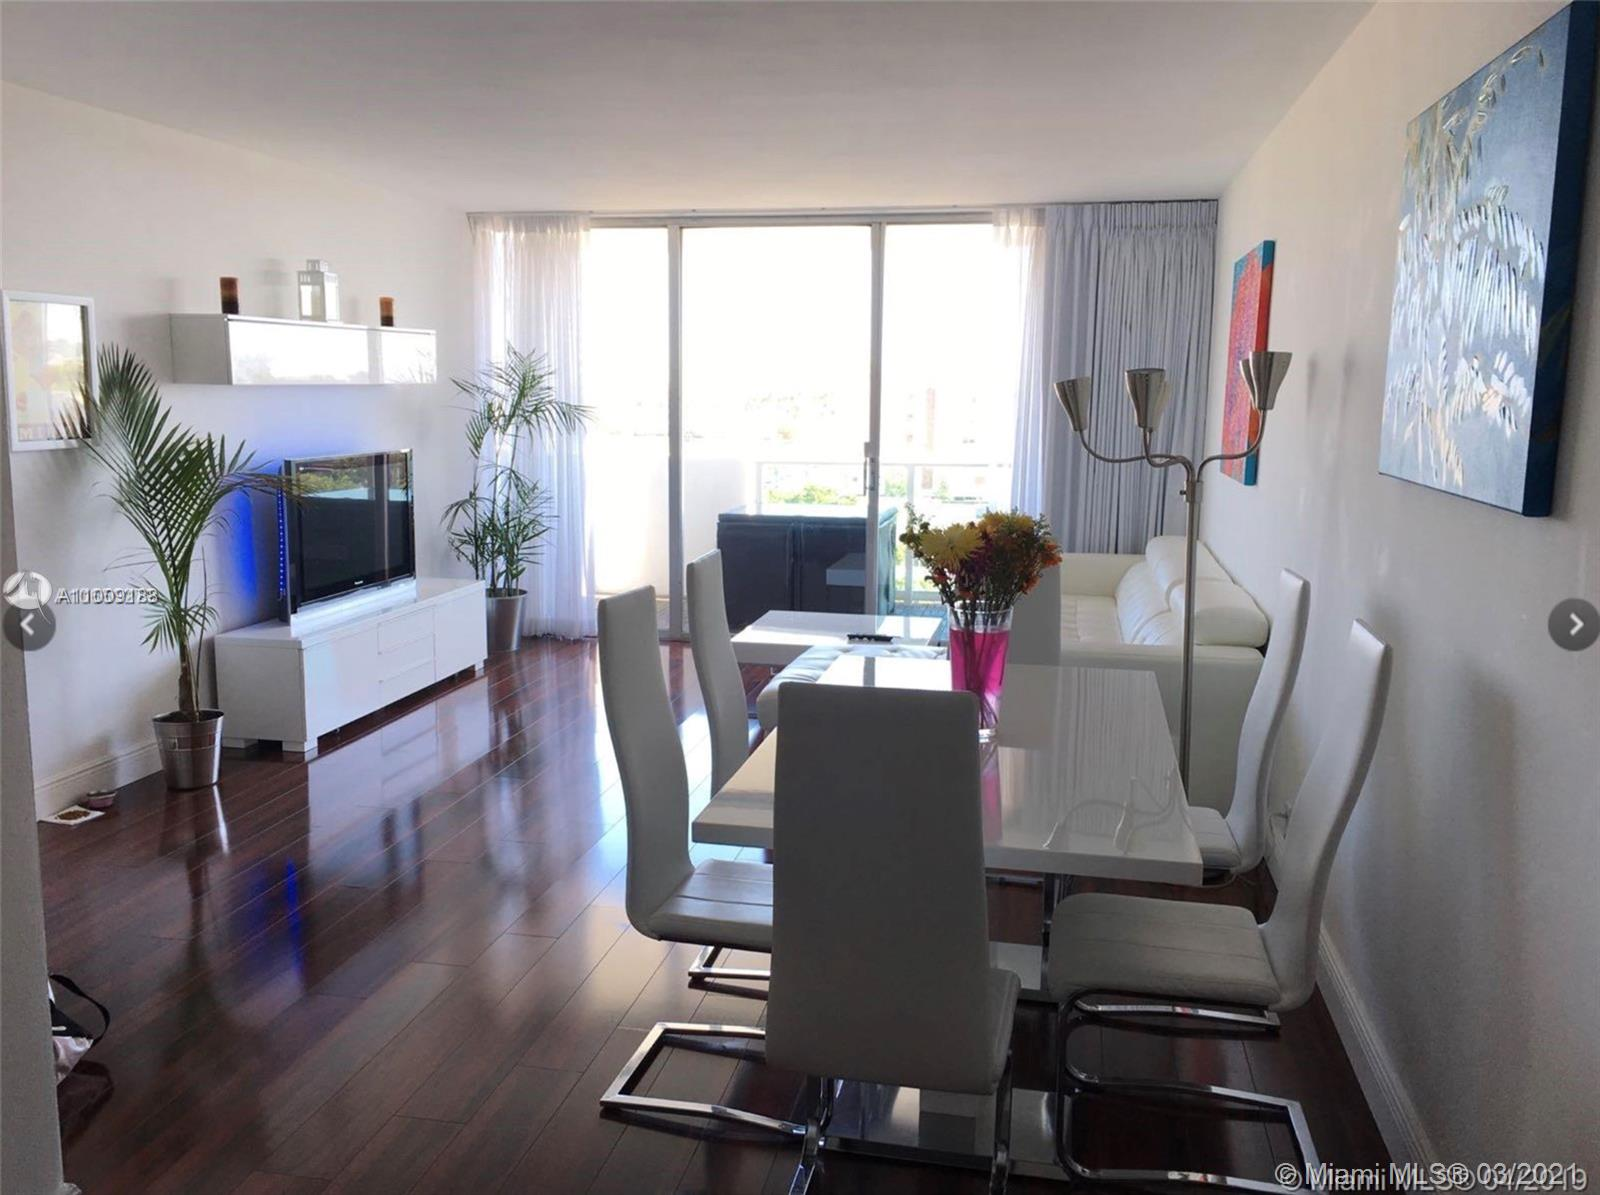 Mirador South #609 - 1000 West Ave #609, Miami Beach, FL 33139